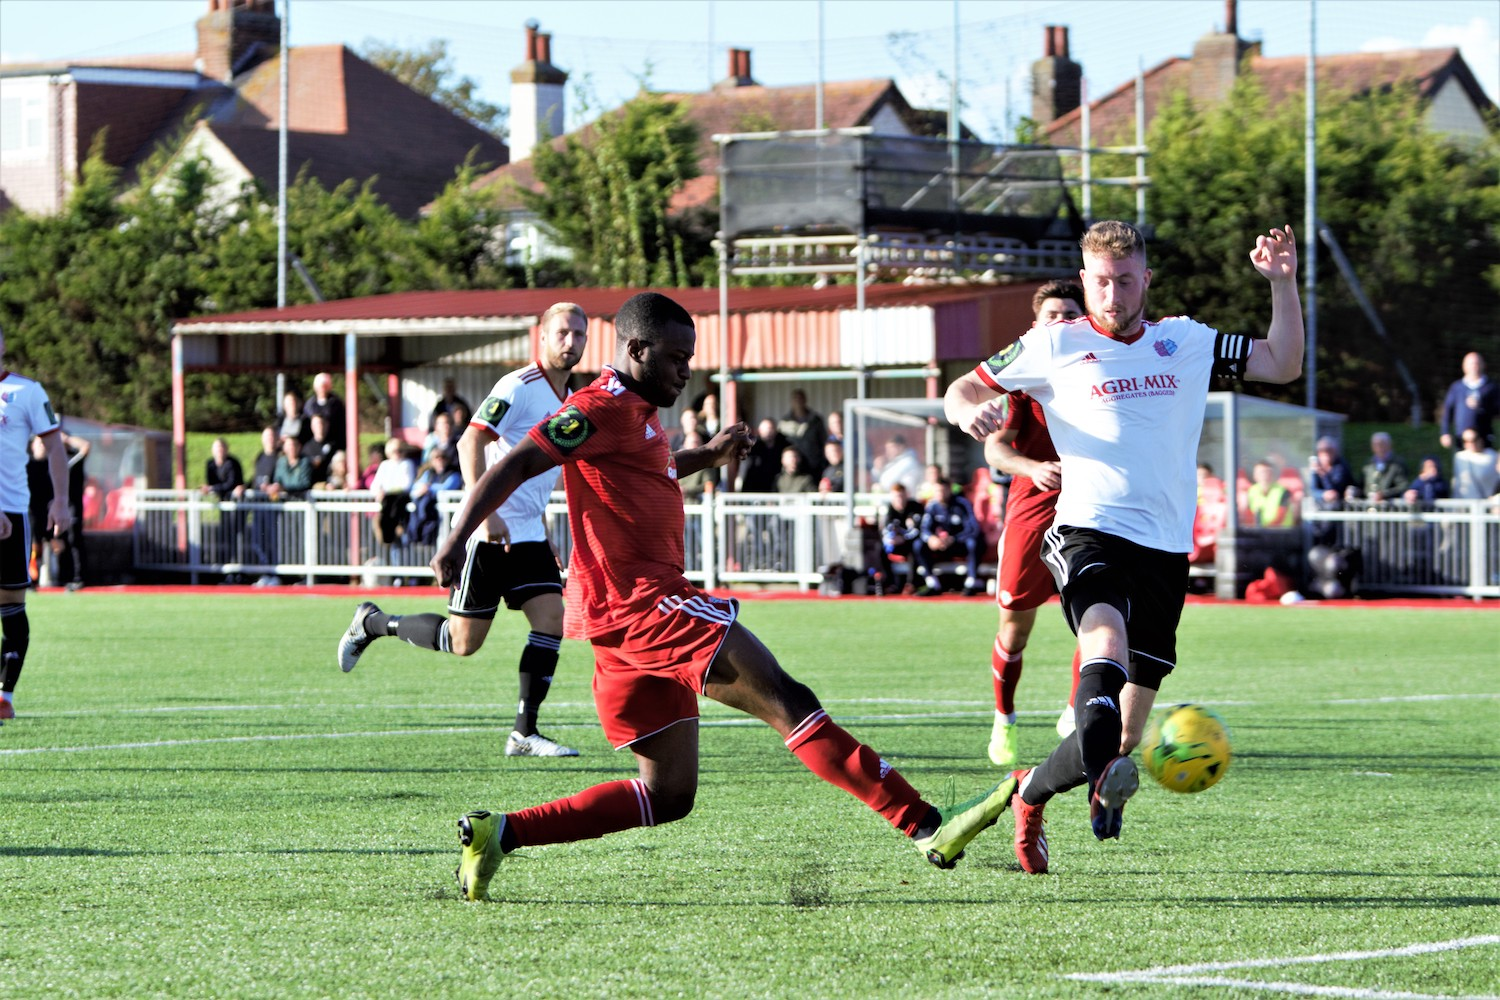 Read the full article - HIGHLIGHTS | 19/20: Brightlingsea Regent [H] – League